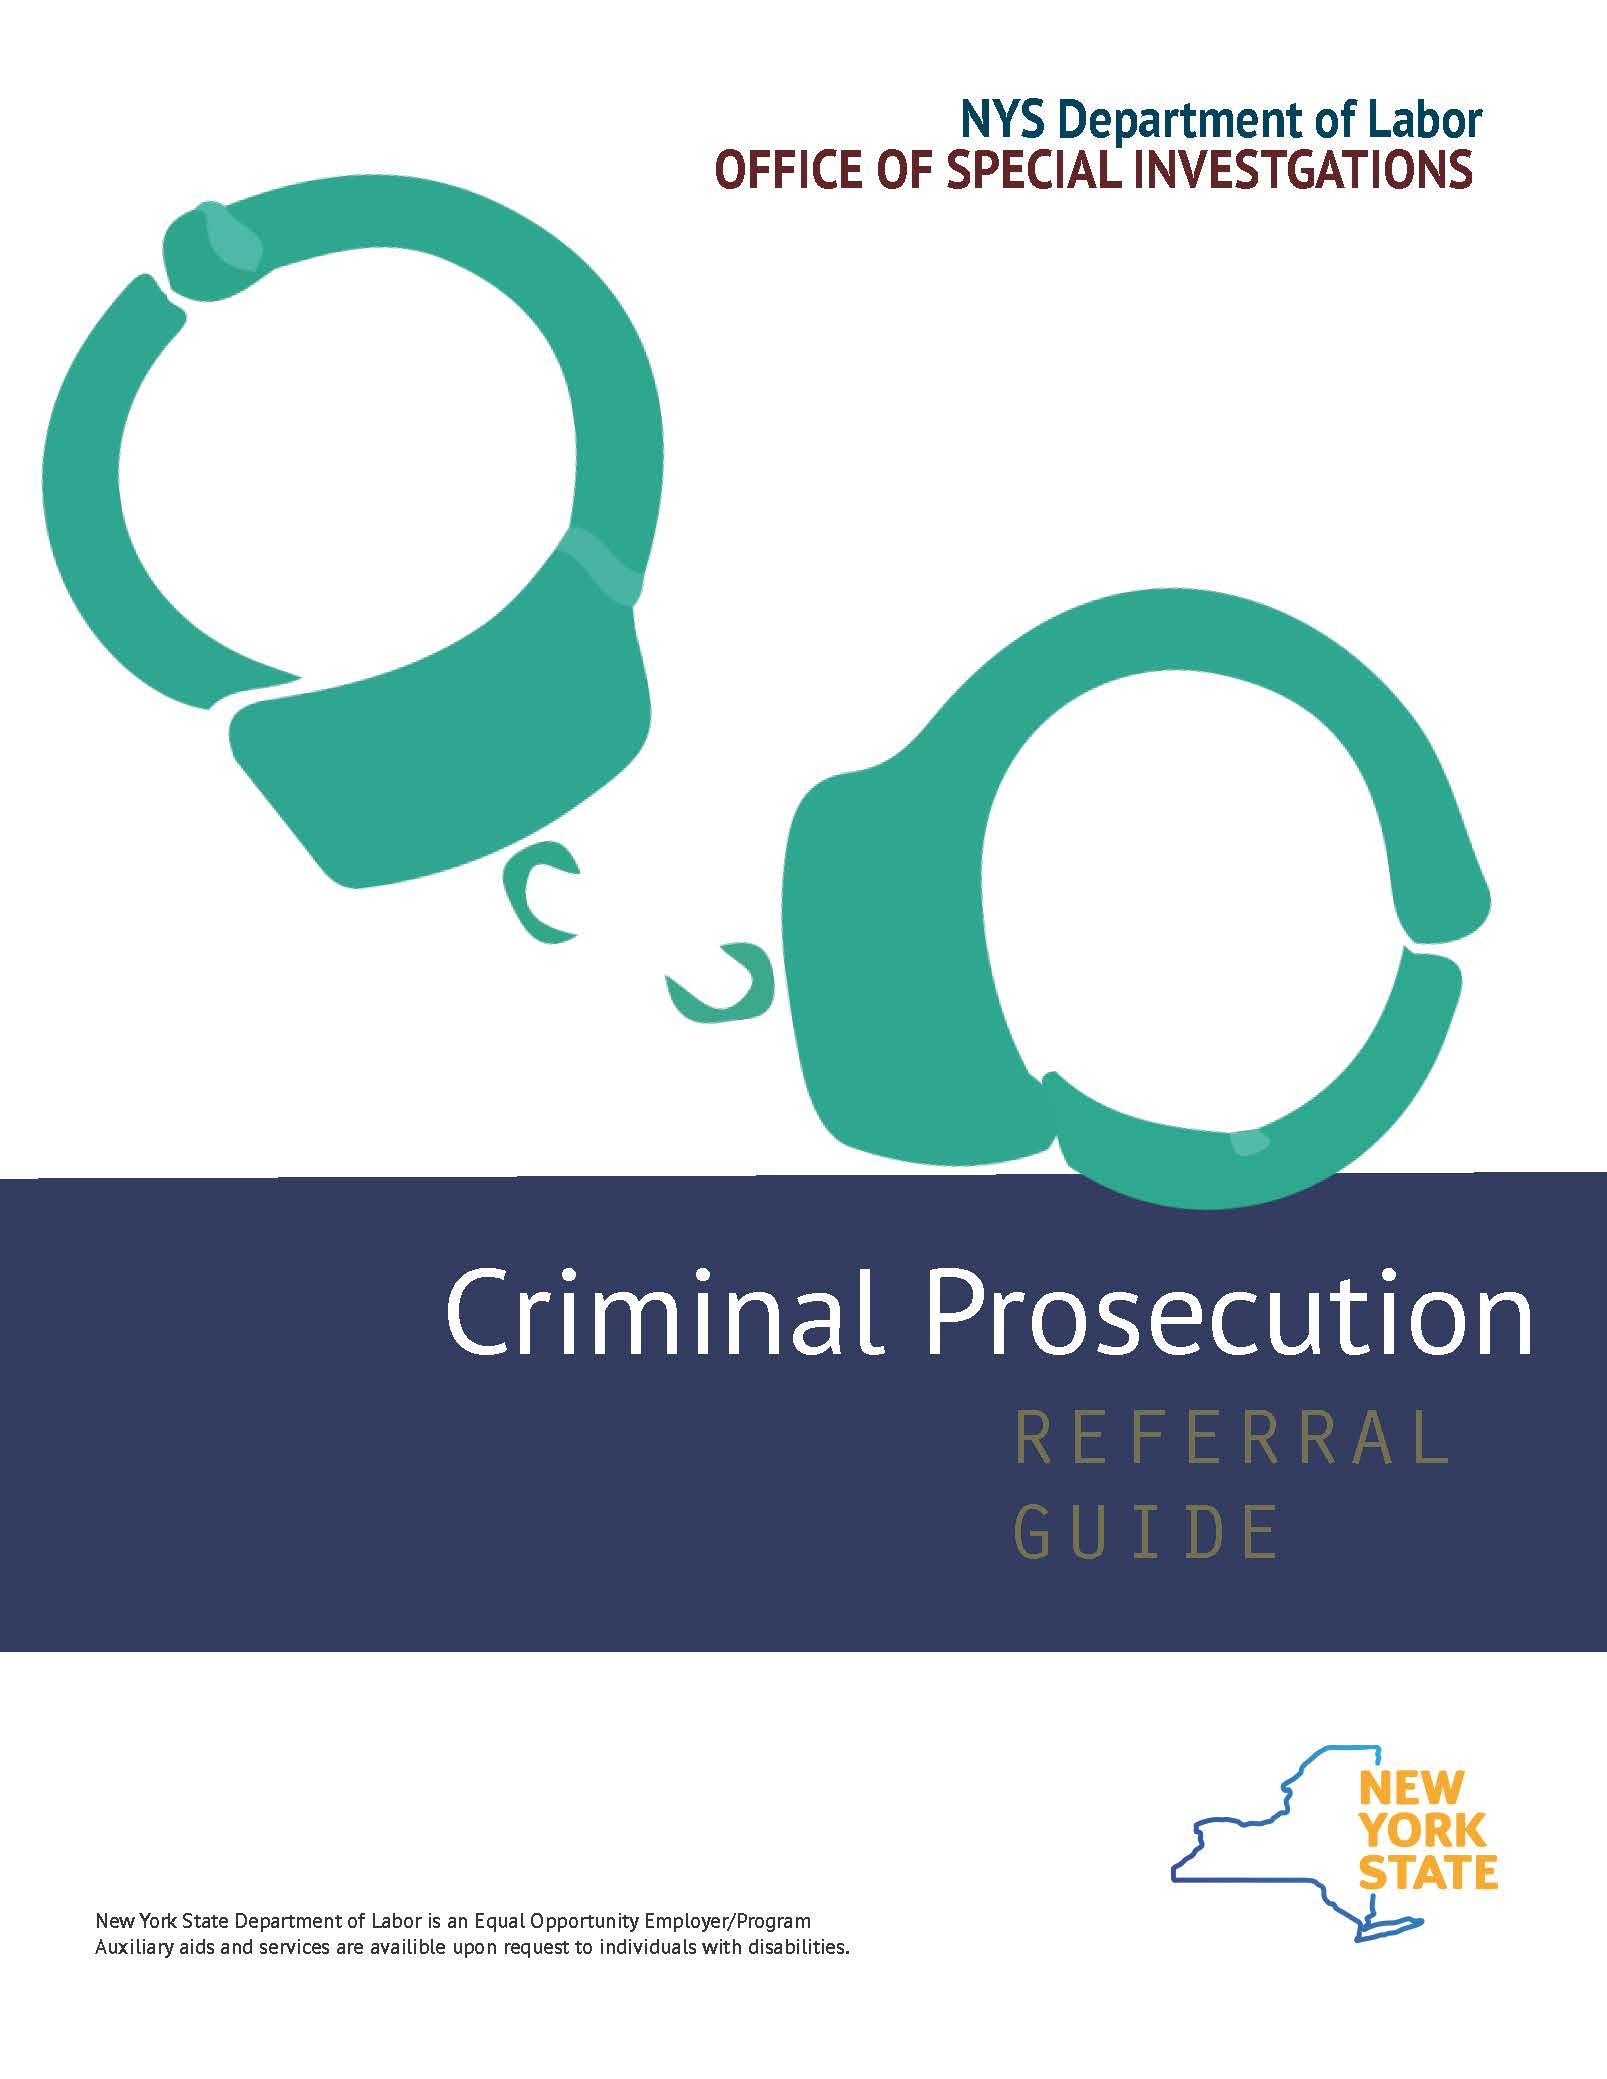 A graphic of green handcuffed on a white background with the title NYS Department of Labor OFFICE OF SPECIAL INVESTGATIONS Criminal Prosecution REFERRAL GUIDE displayed. An EEO statement is also displayed.